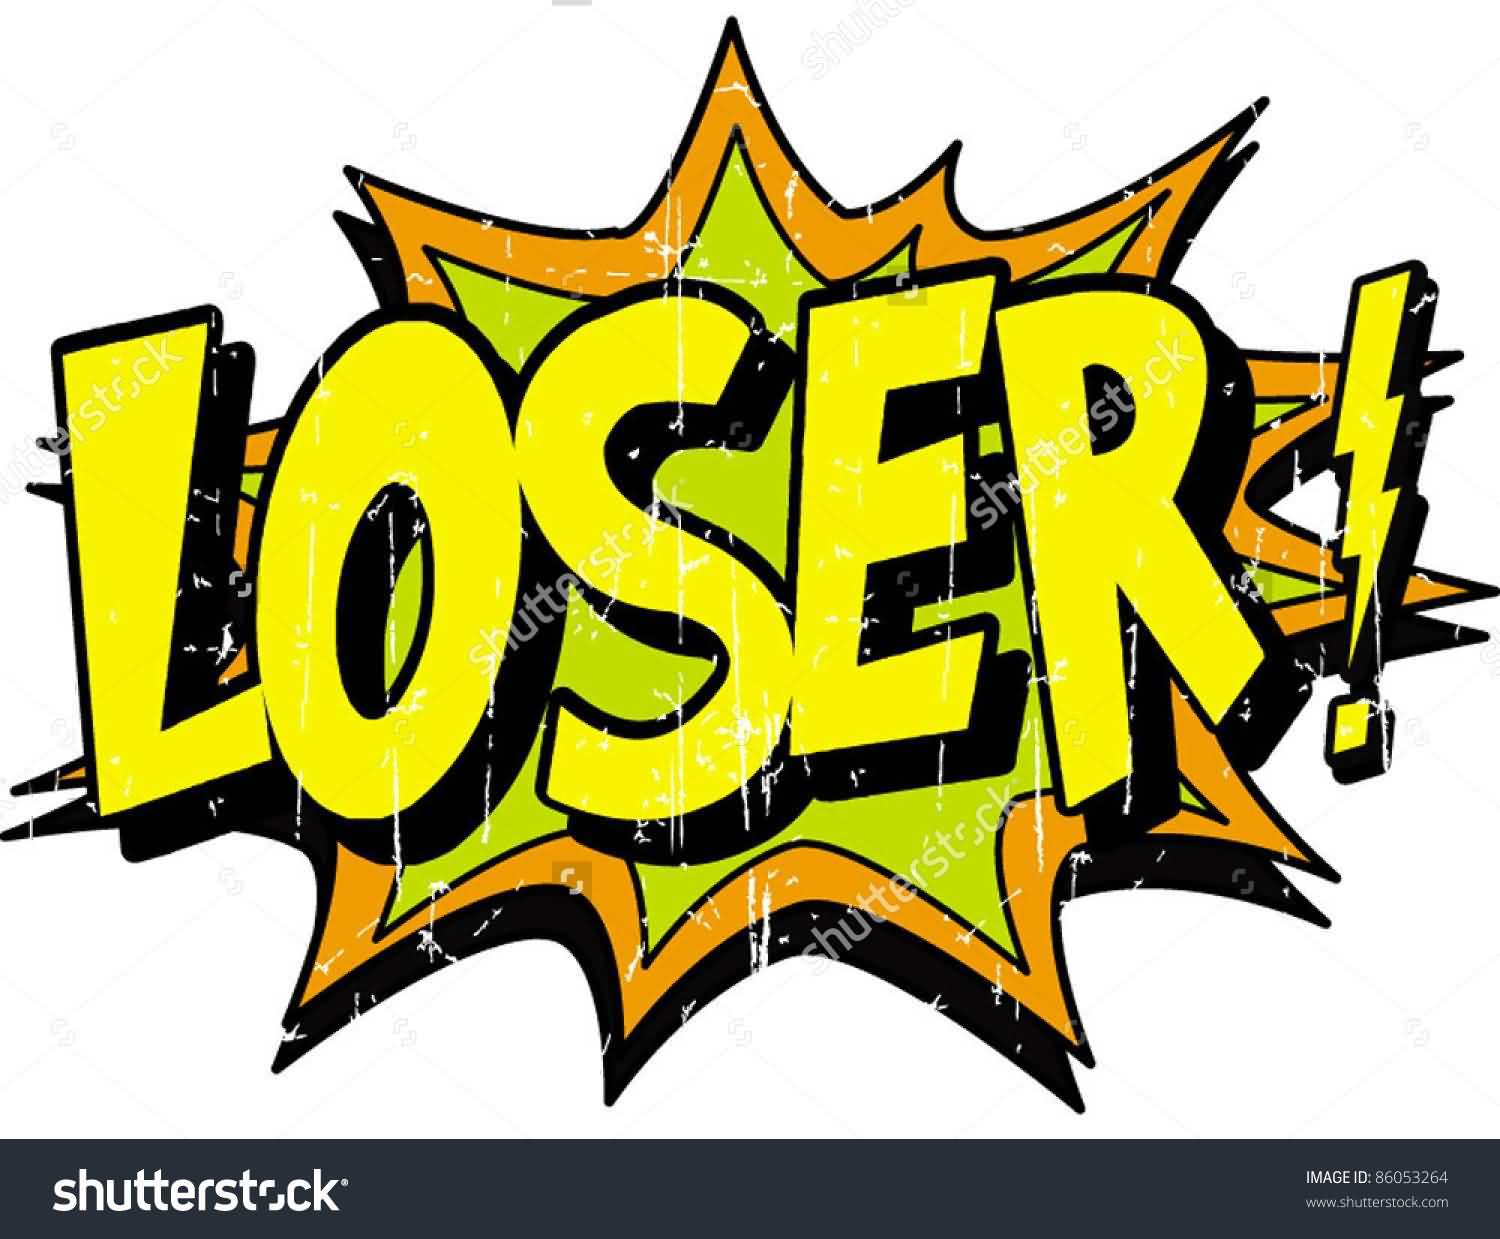 best loser pictures. Free clipart images quotes winners and losers